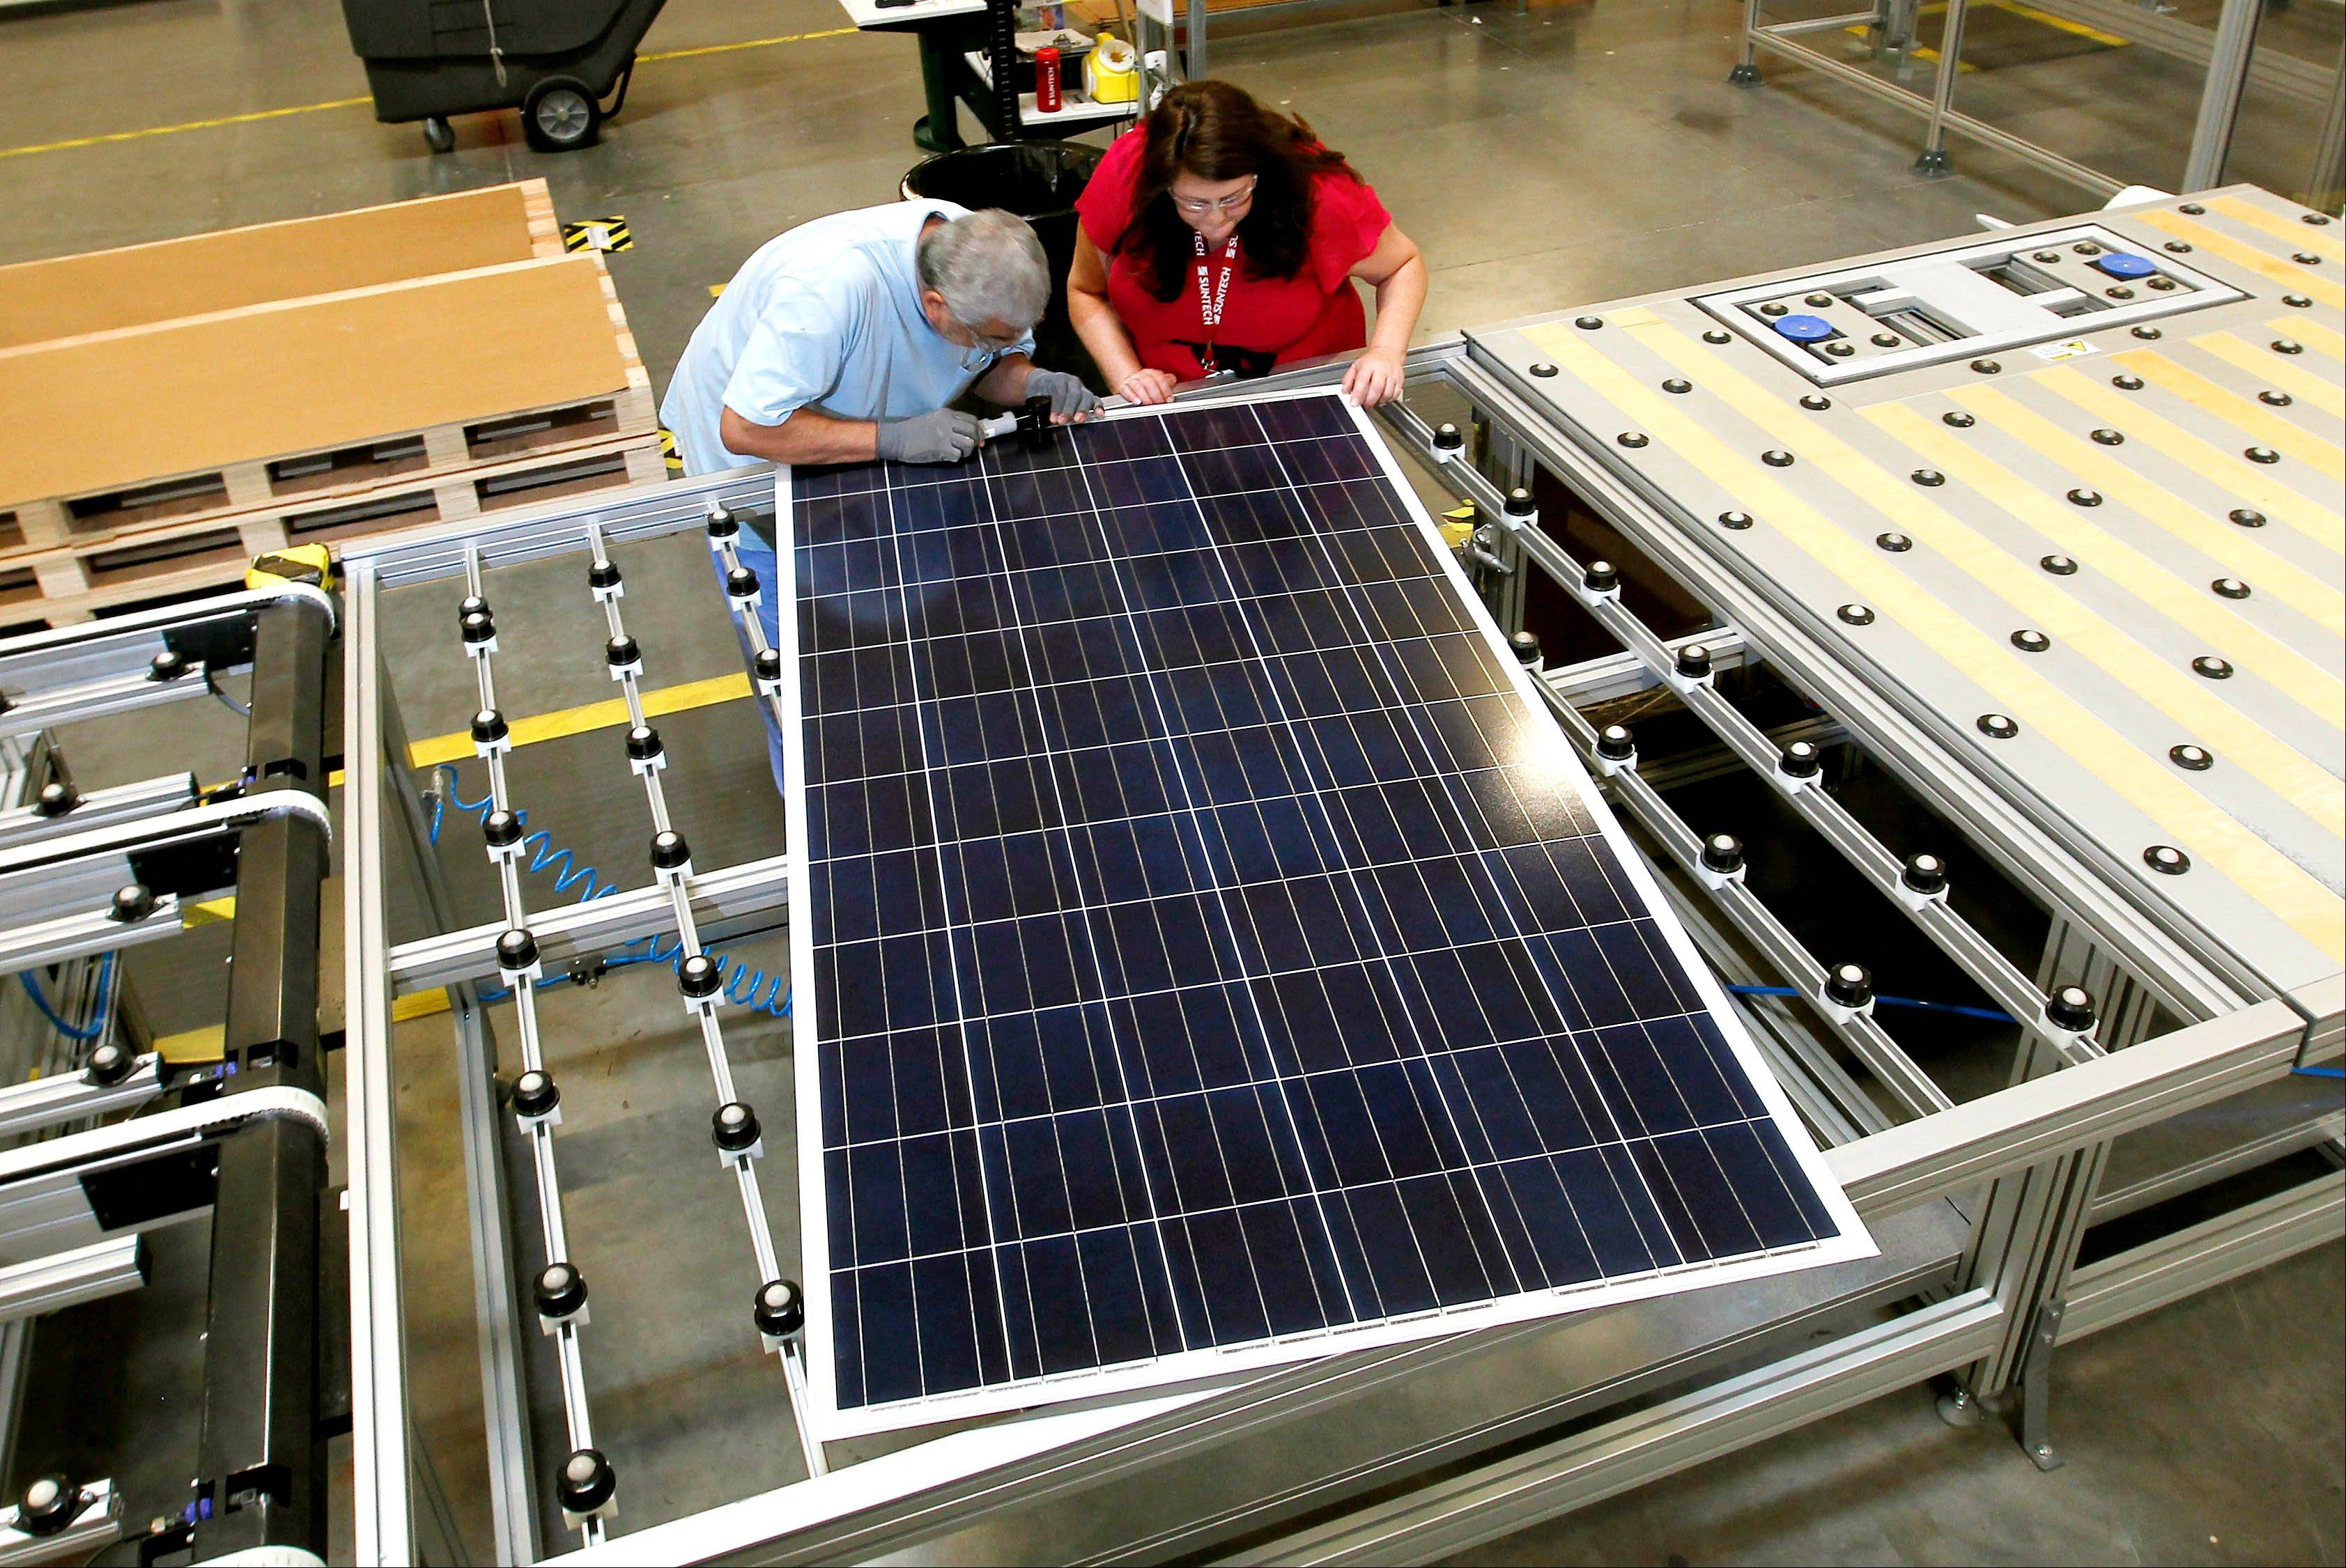 A worker for a Chinese-owned solar panel manufacturer examines a solar panel at a company facility in Goodyear, Ariz. The factory makes solar panels for one of the world's biggest solar manufacturers.